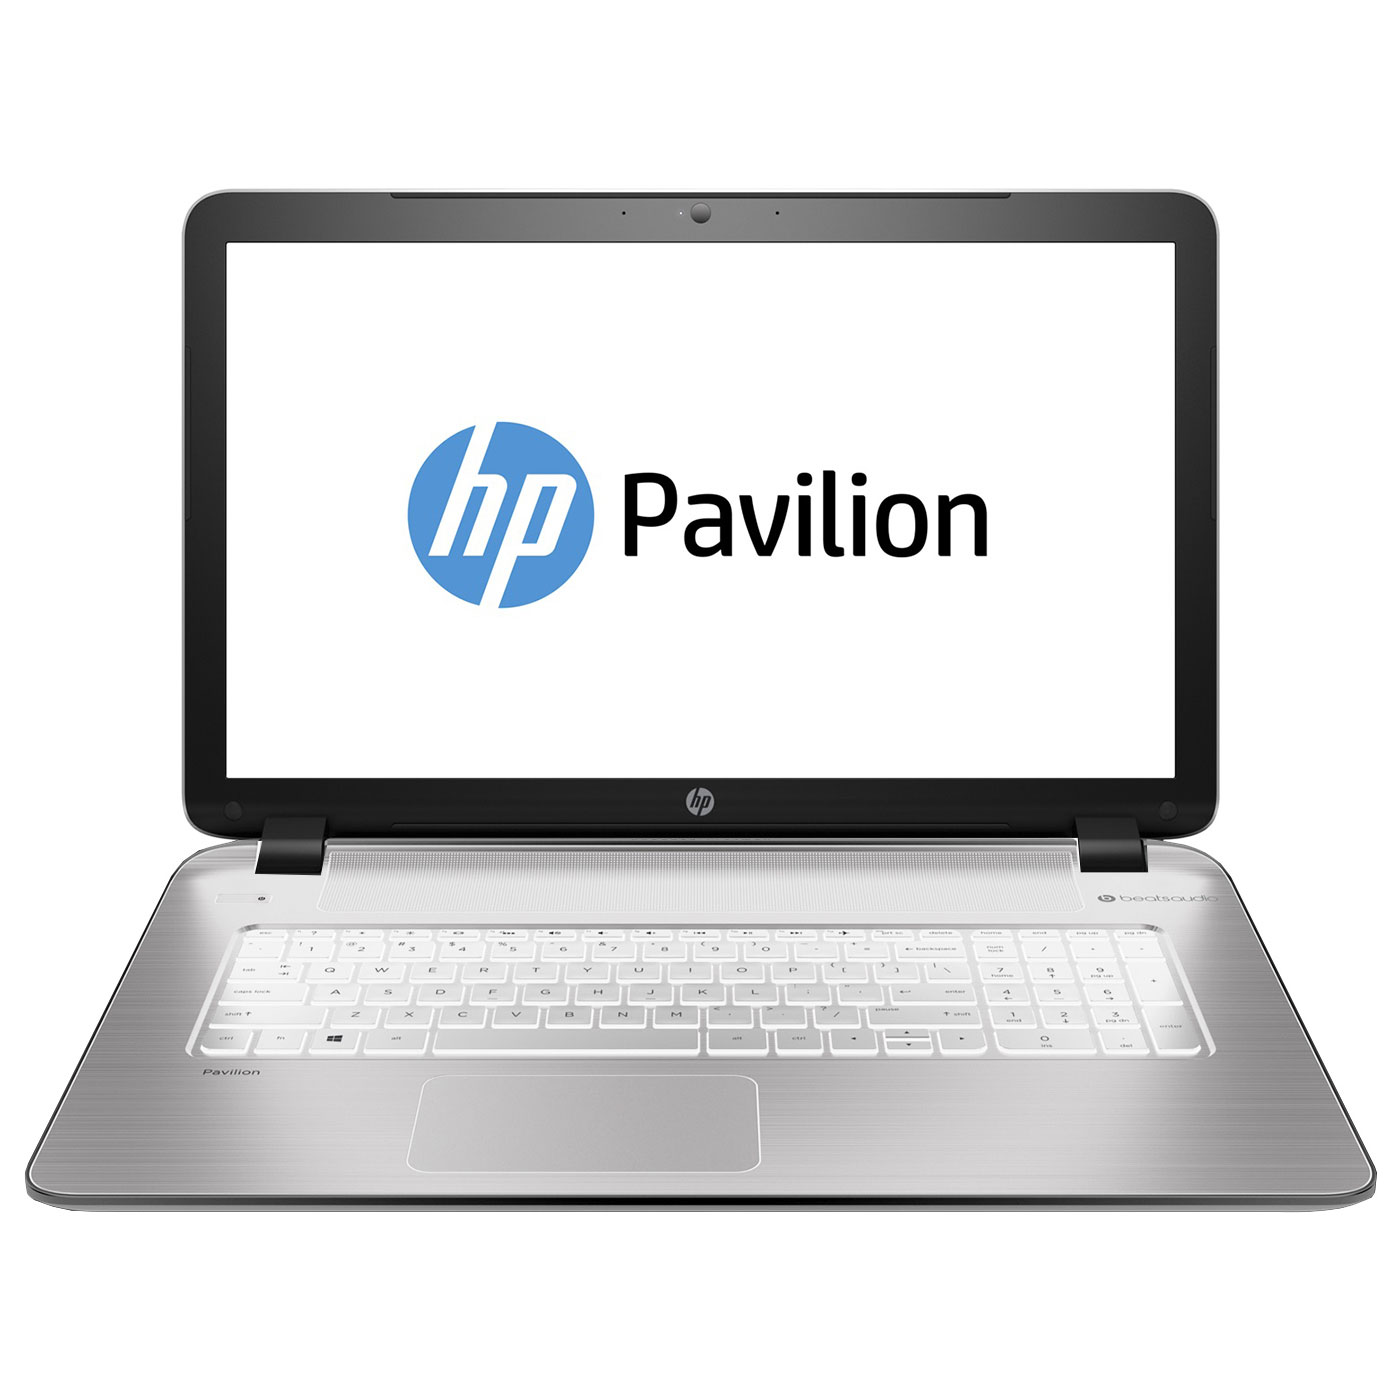 hp pavilion 17 f237nf blanc pc portable hp sur ldlc. Black Bedroom Furniture Sets. Home Design Ideas